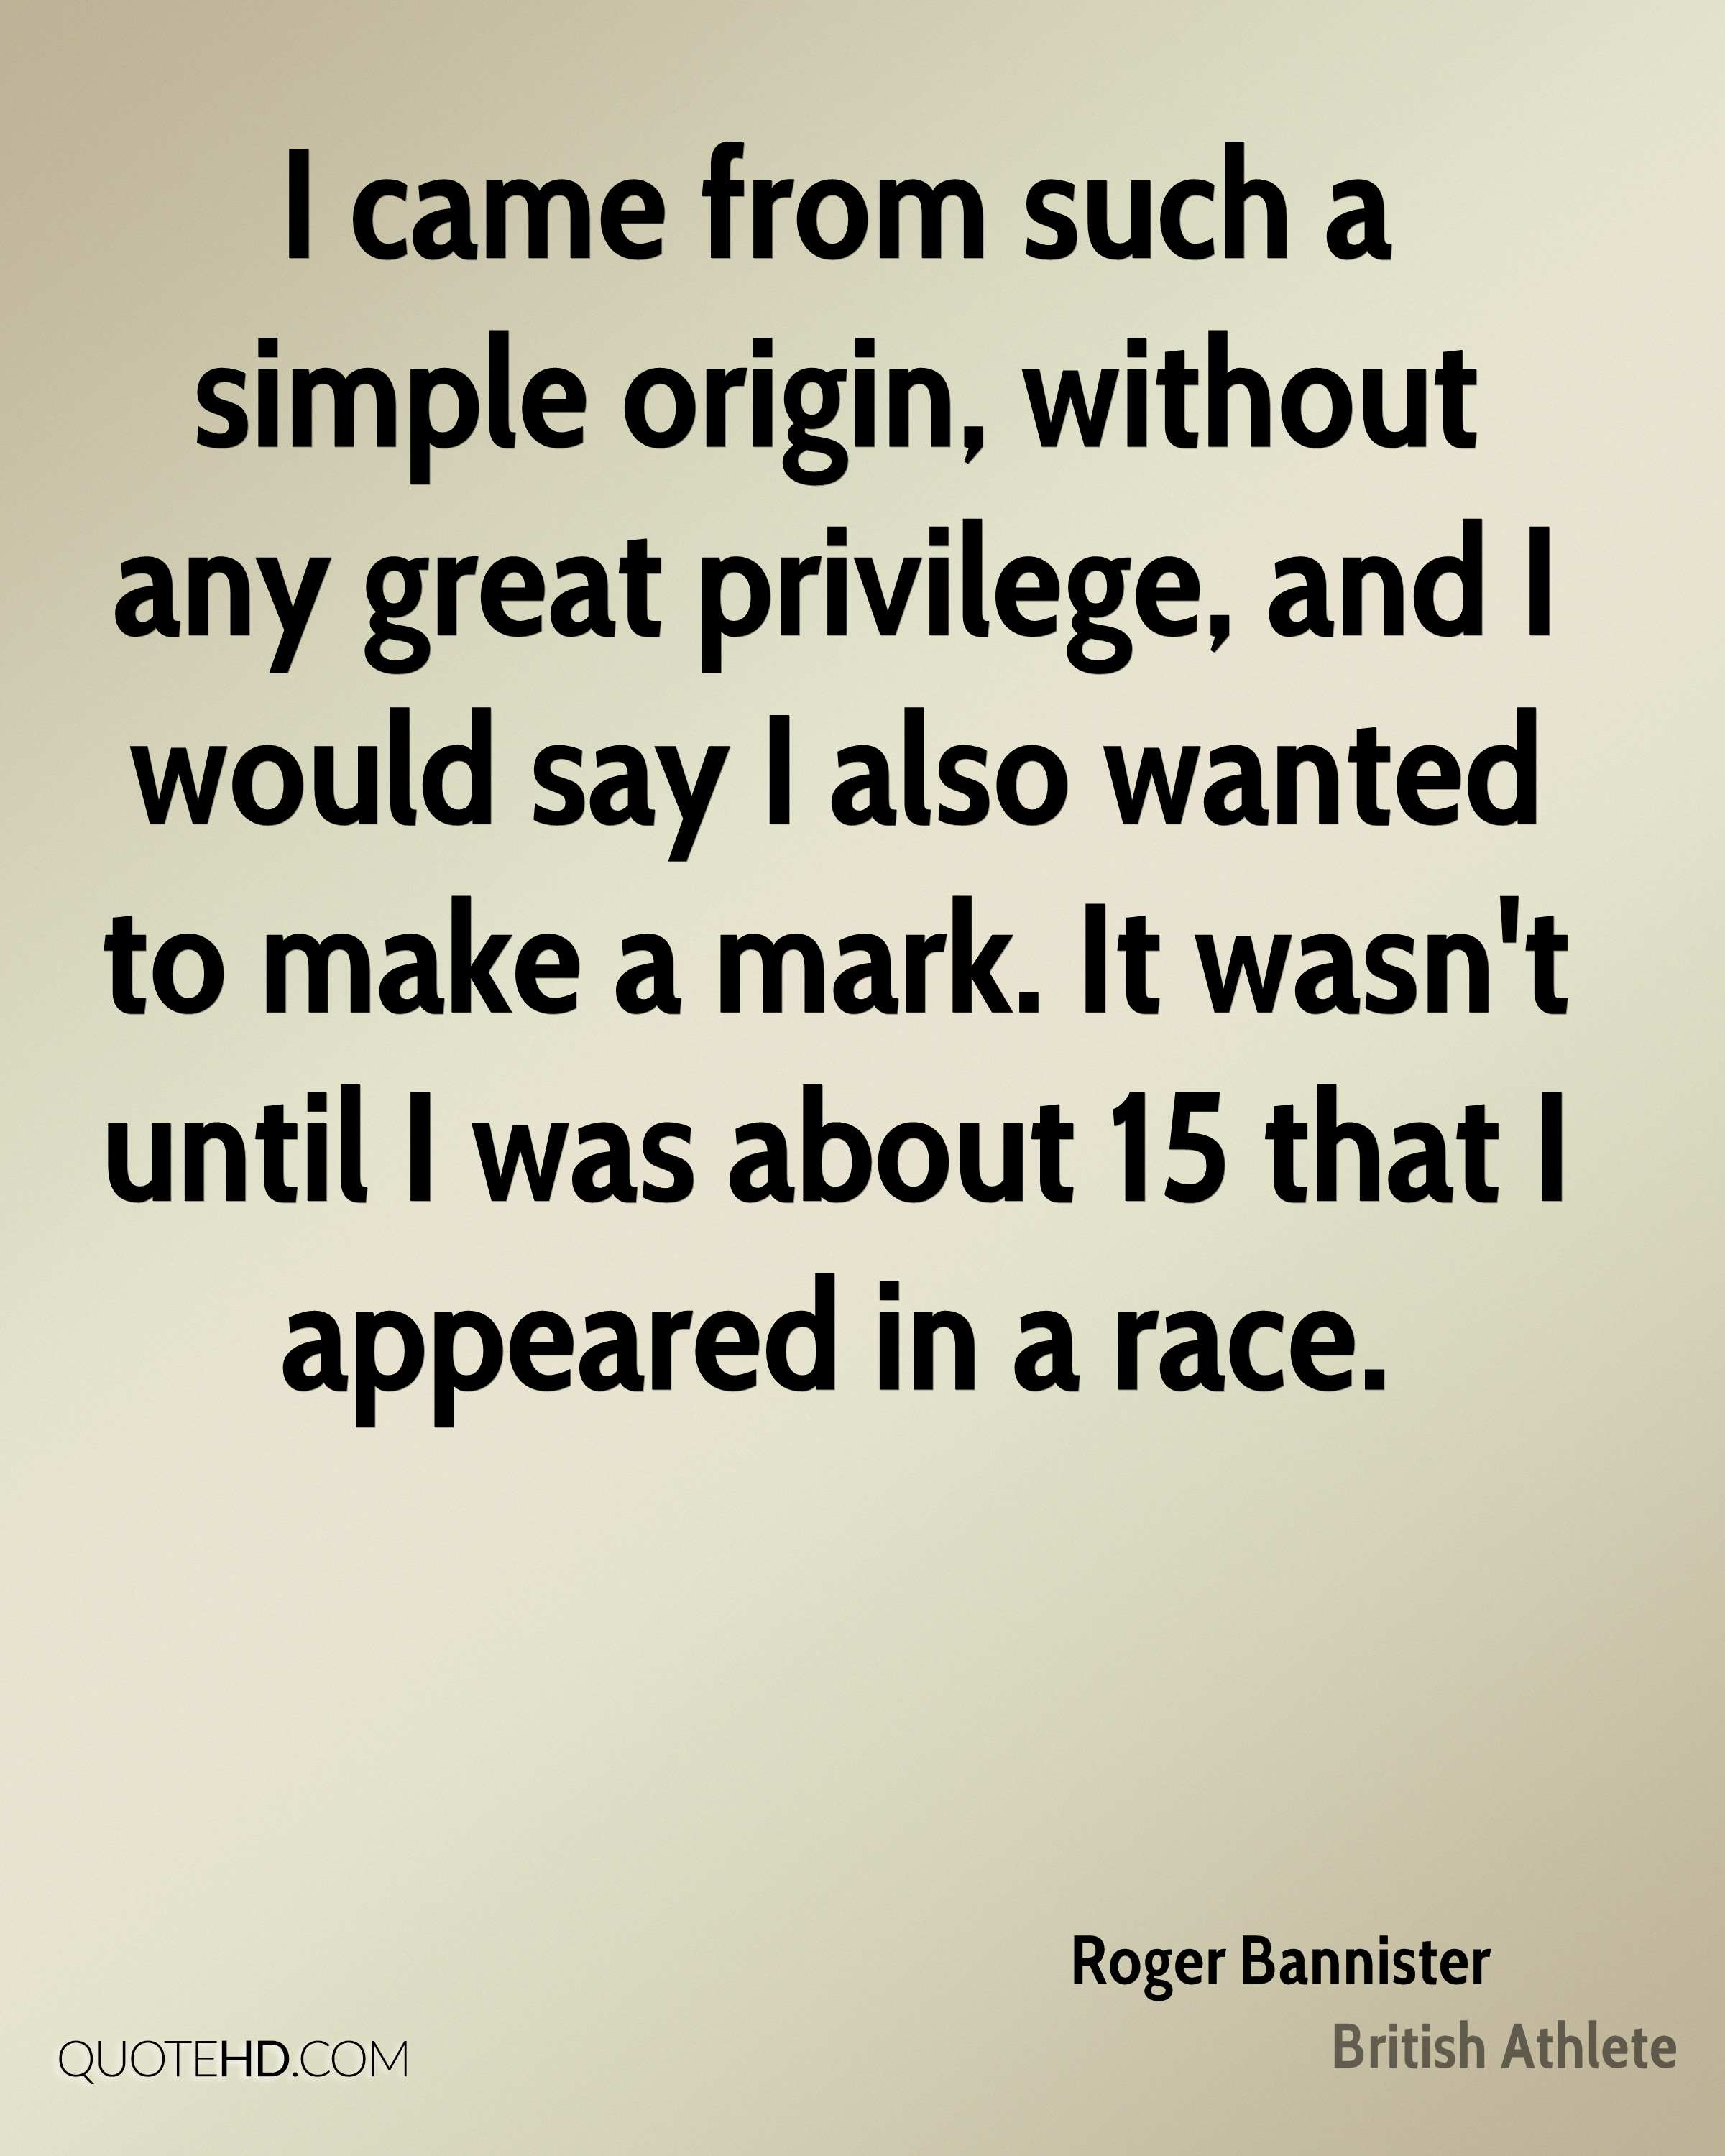 I came from such a simple origin, without any great privilege, and I would say I also wanted to make a mark. It wasn't until I was about 15 that I appeared in a race.